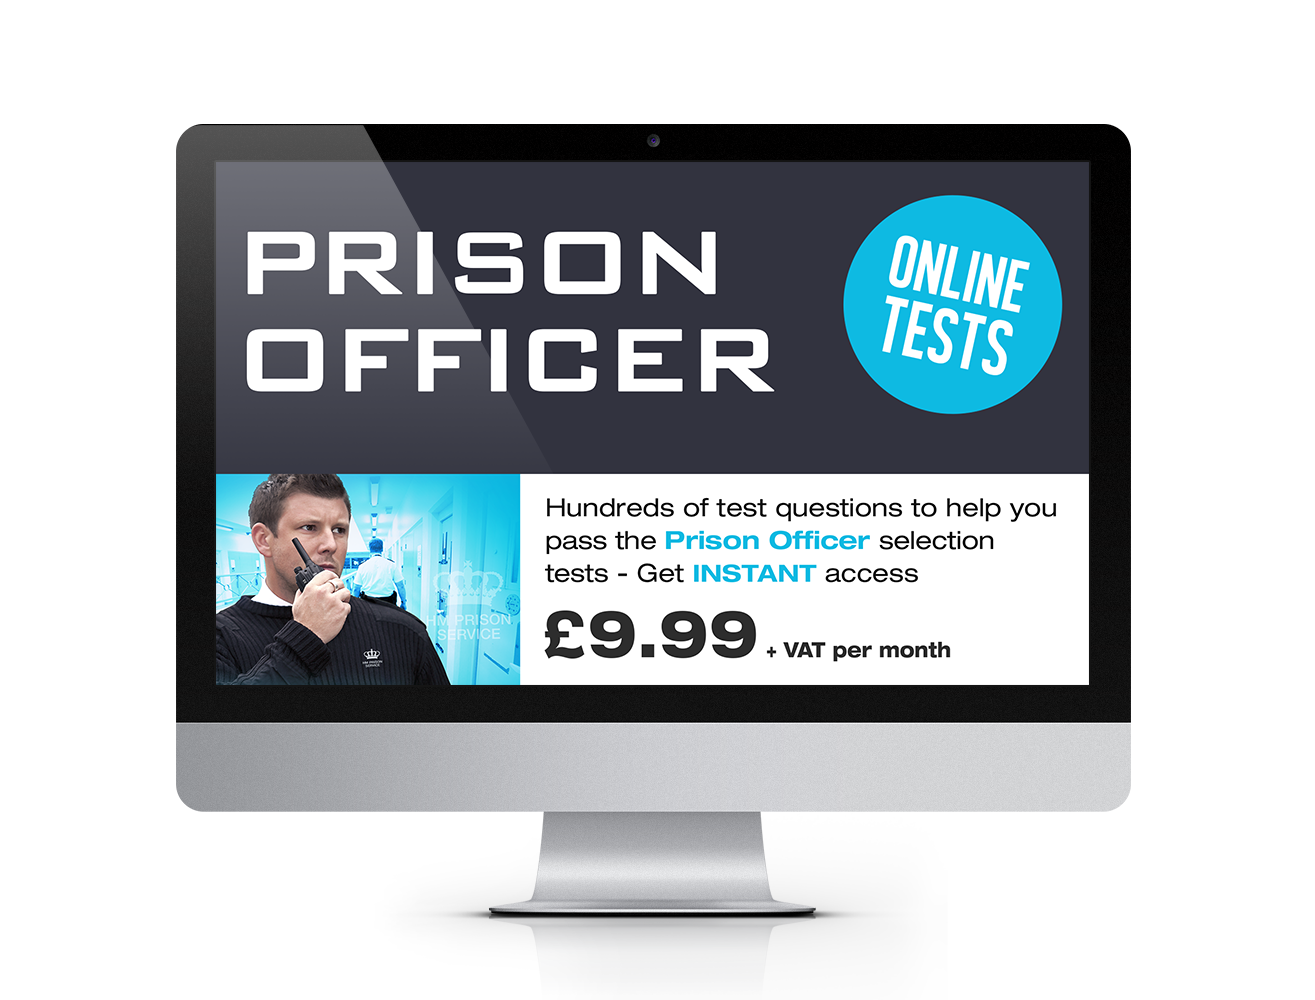 Online-Prison-Officer-Tests